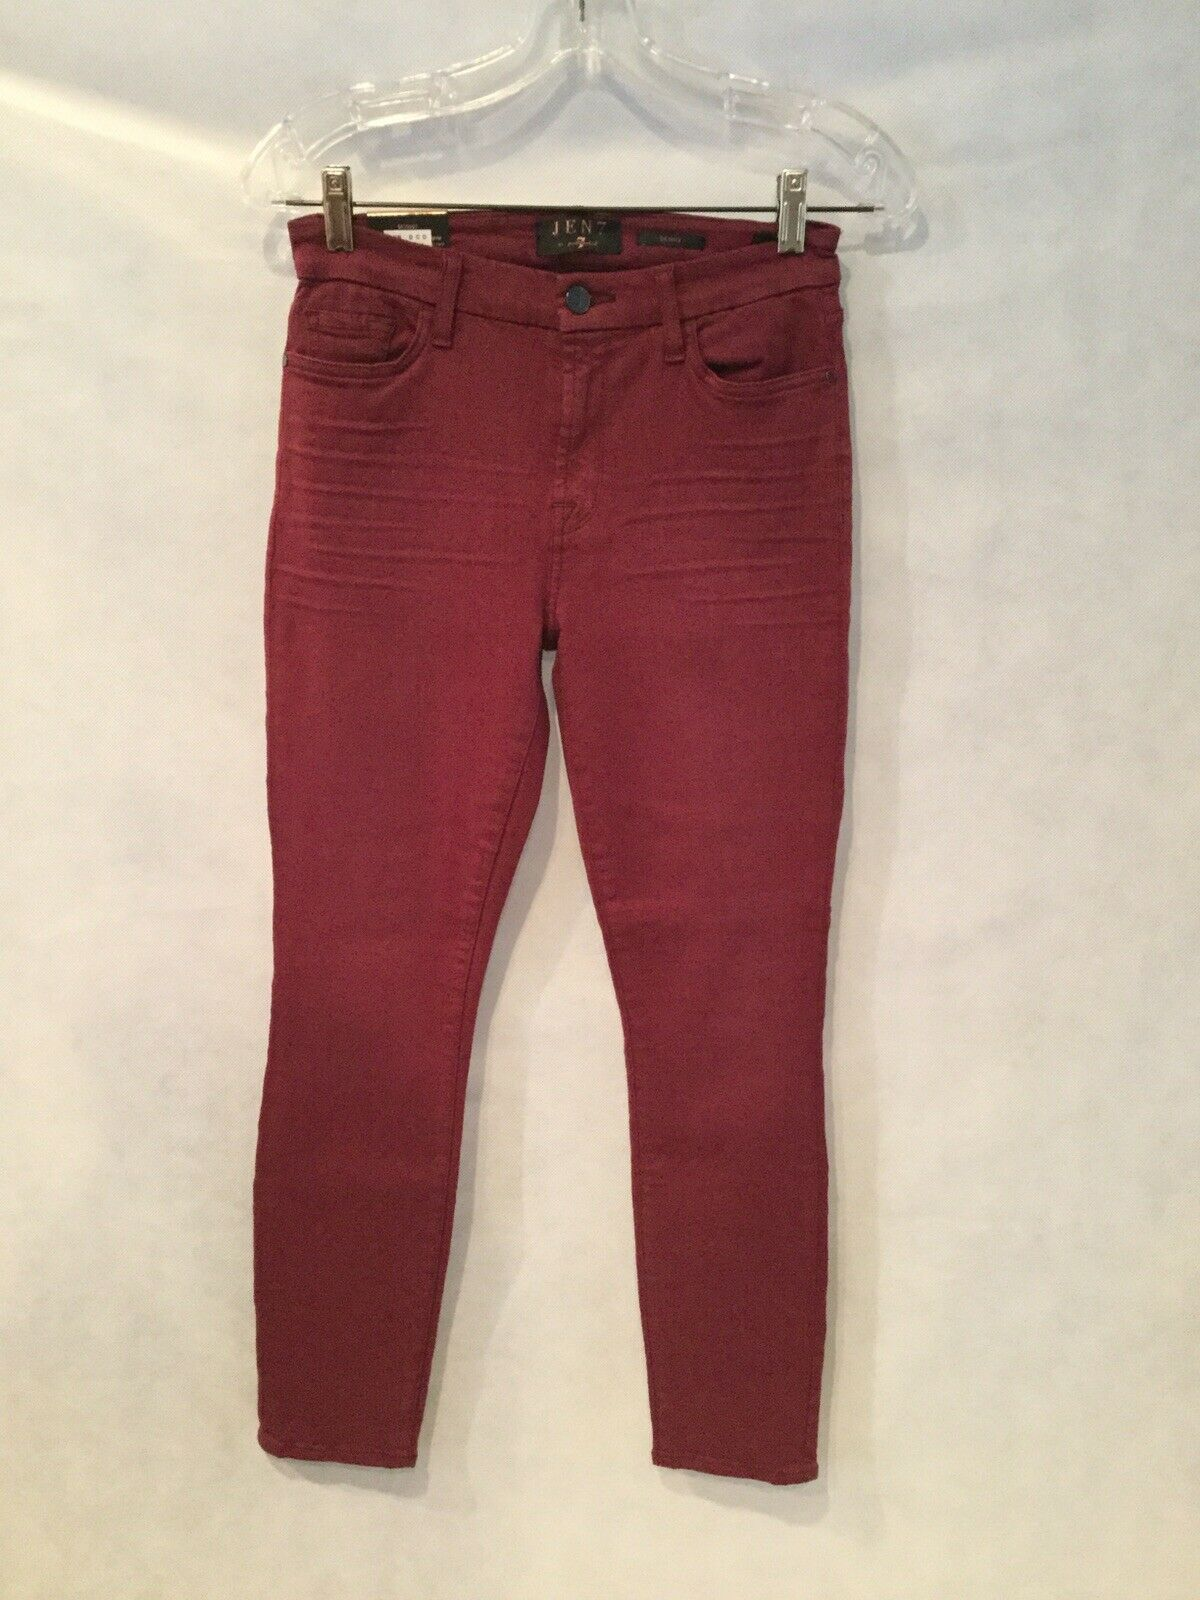 NWT JEN7 BY 7 FOR ALL MANKIND MID-RISE SKINNY TWILL PANTS-SZ 2